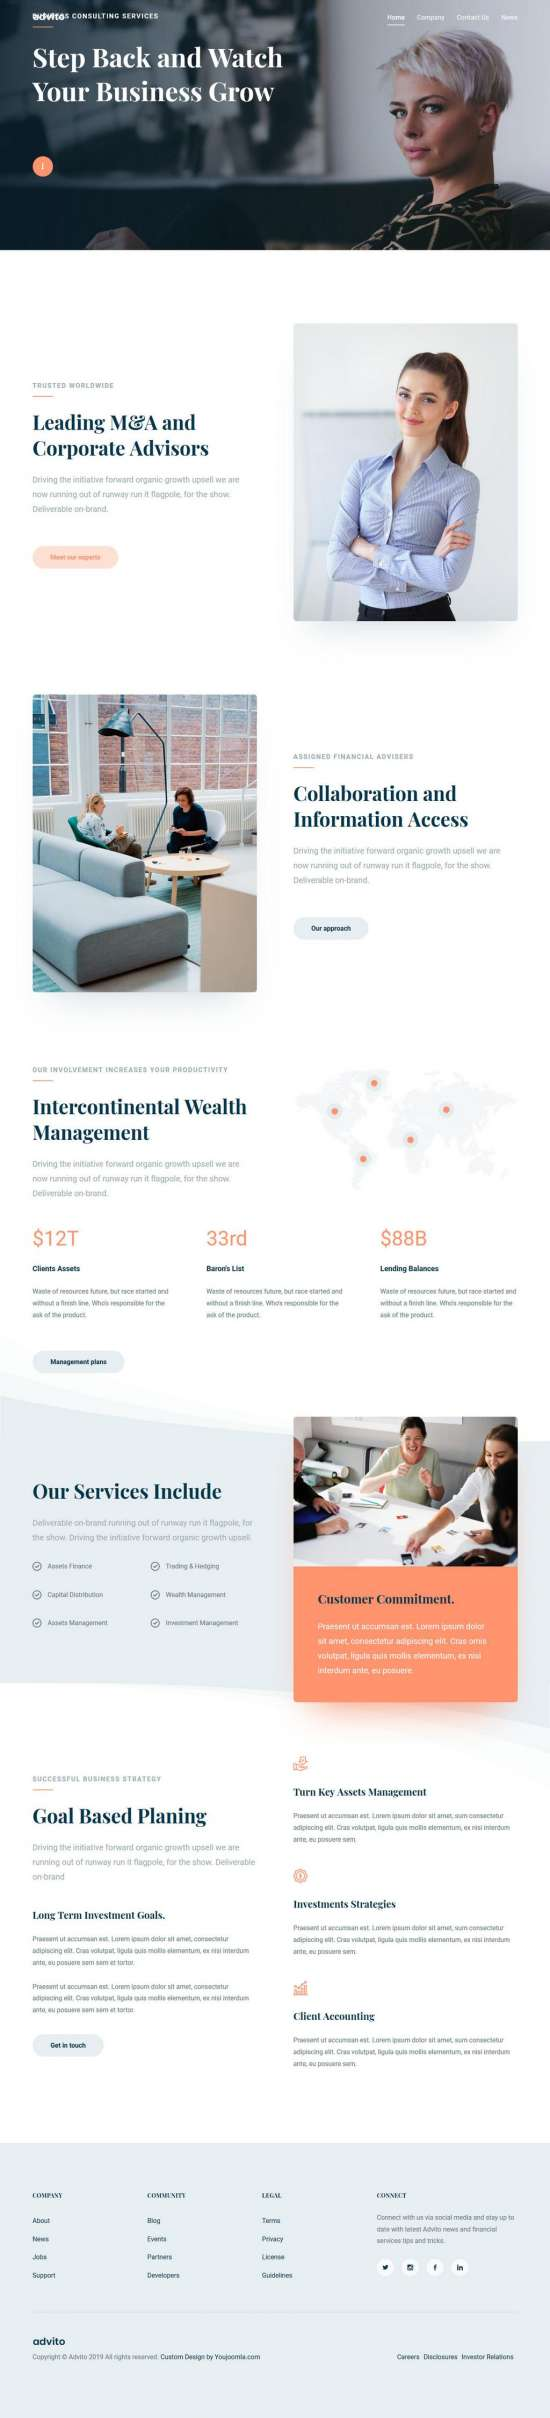 advito joomla template 01 550x2418 - Advito Joomla Template